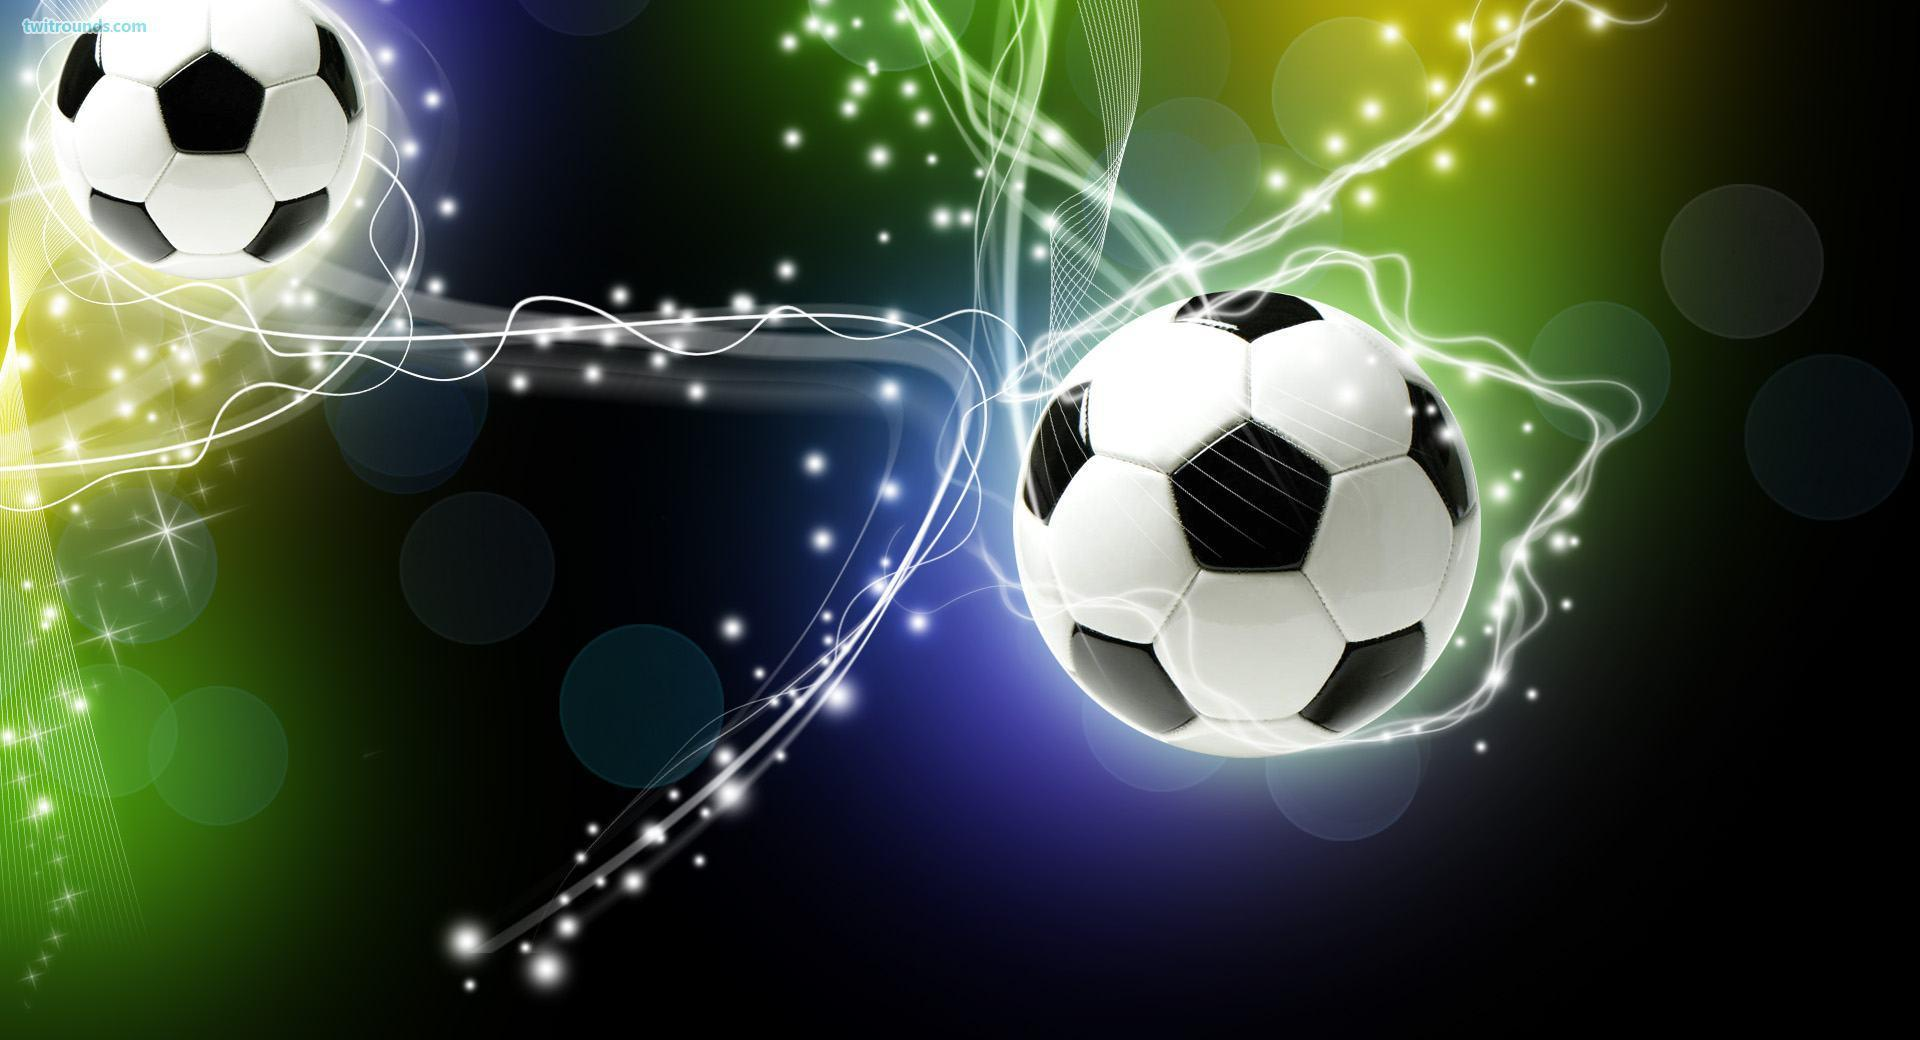 Wallpapers For > Soccer Backgrounds 2014